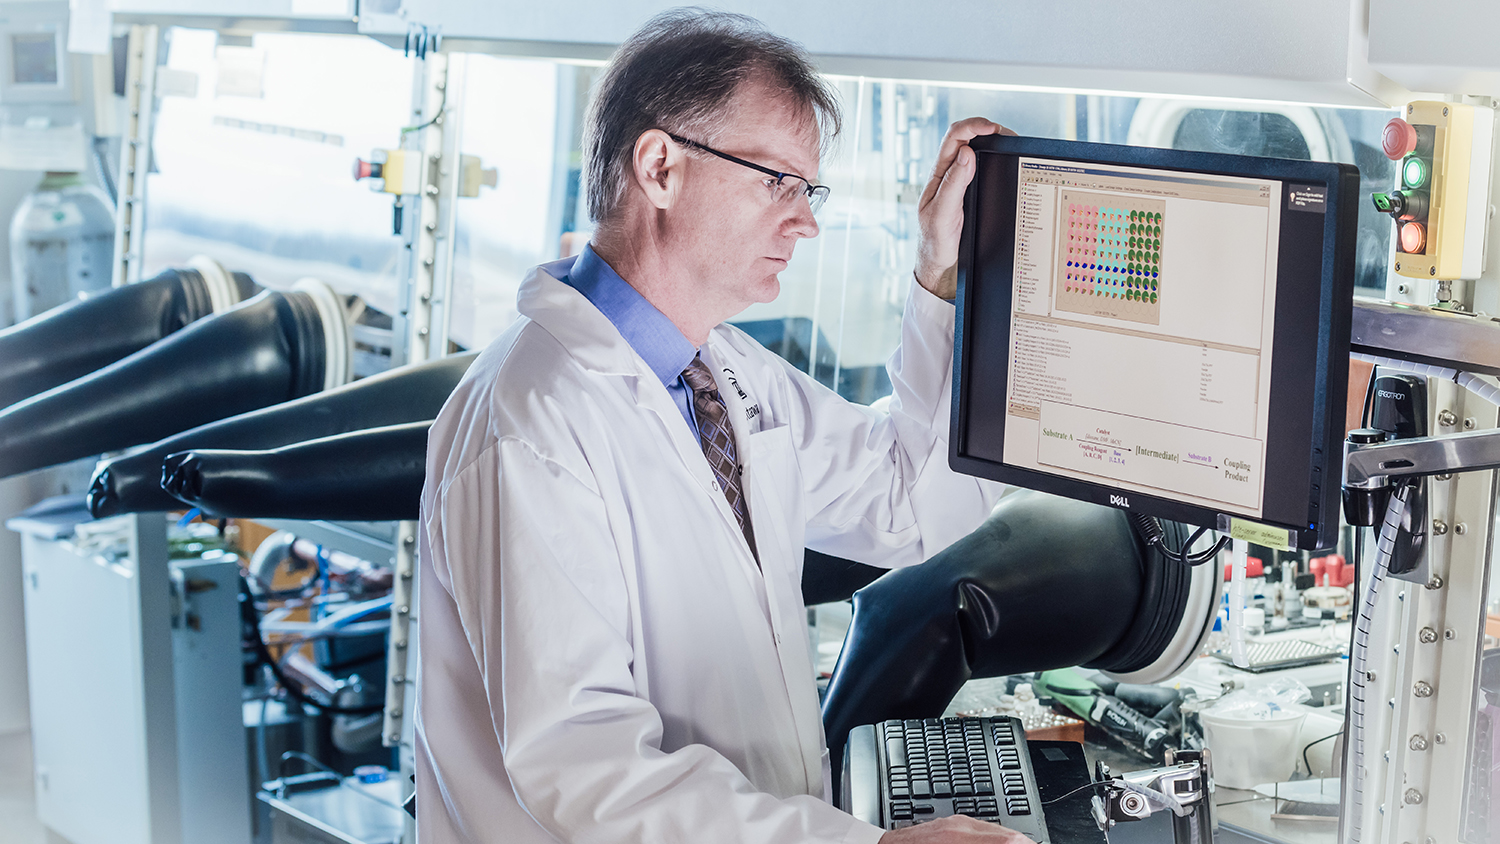 Professor Michael Organ is in a laboratory and looks at scientific data, in front of a computer.